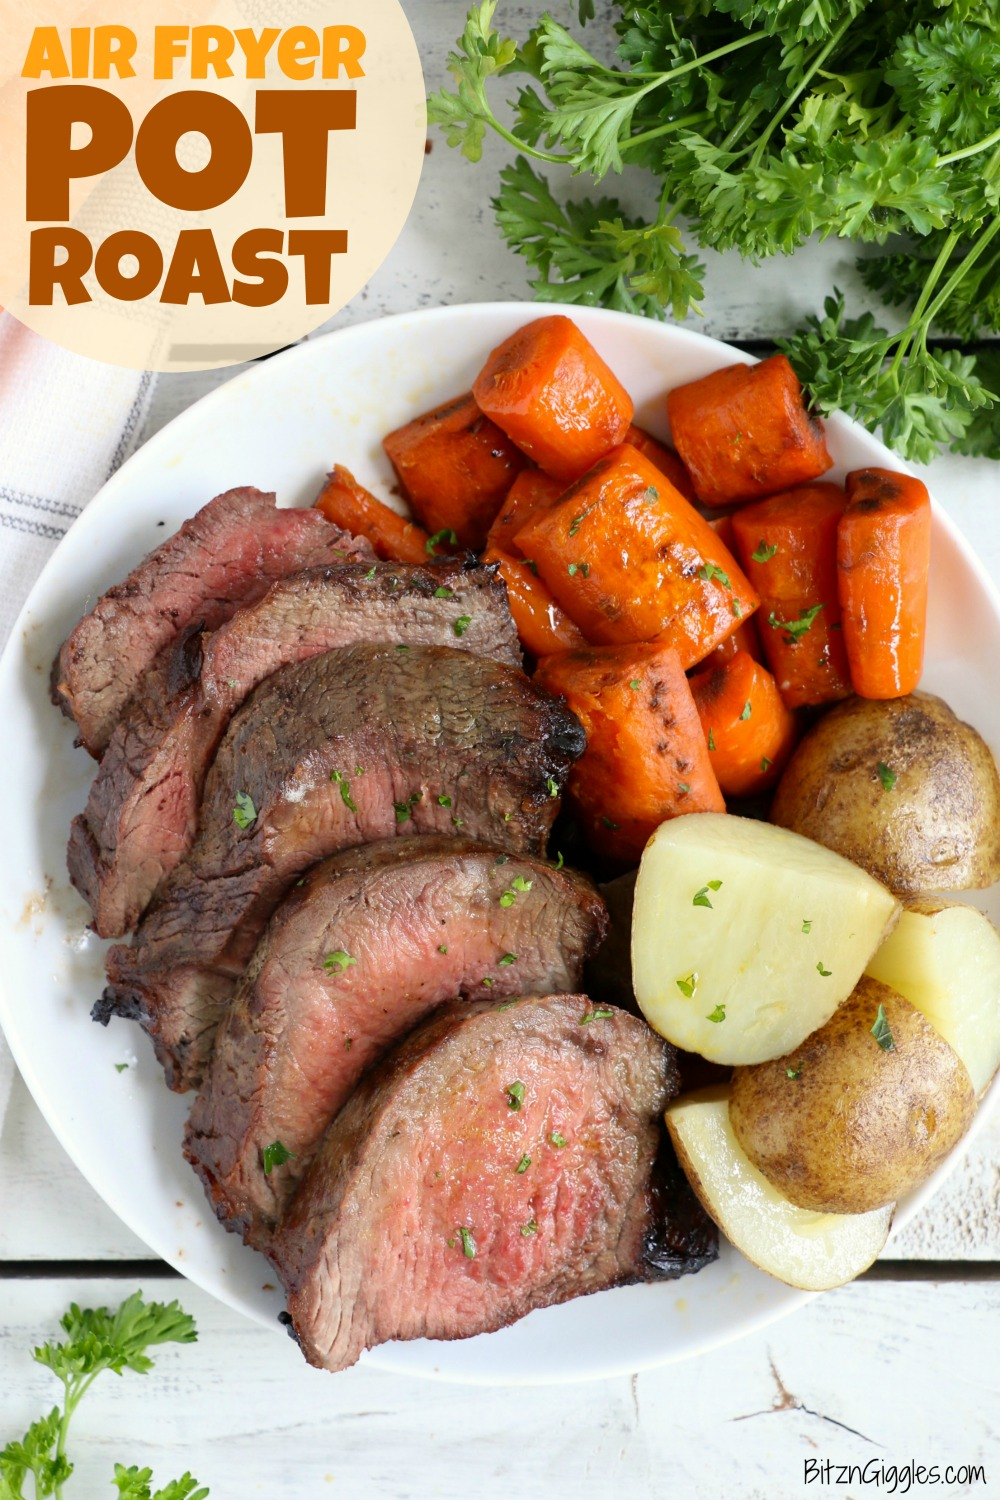 Air Fryer Pot Roast Bitz Giggles